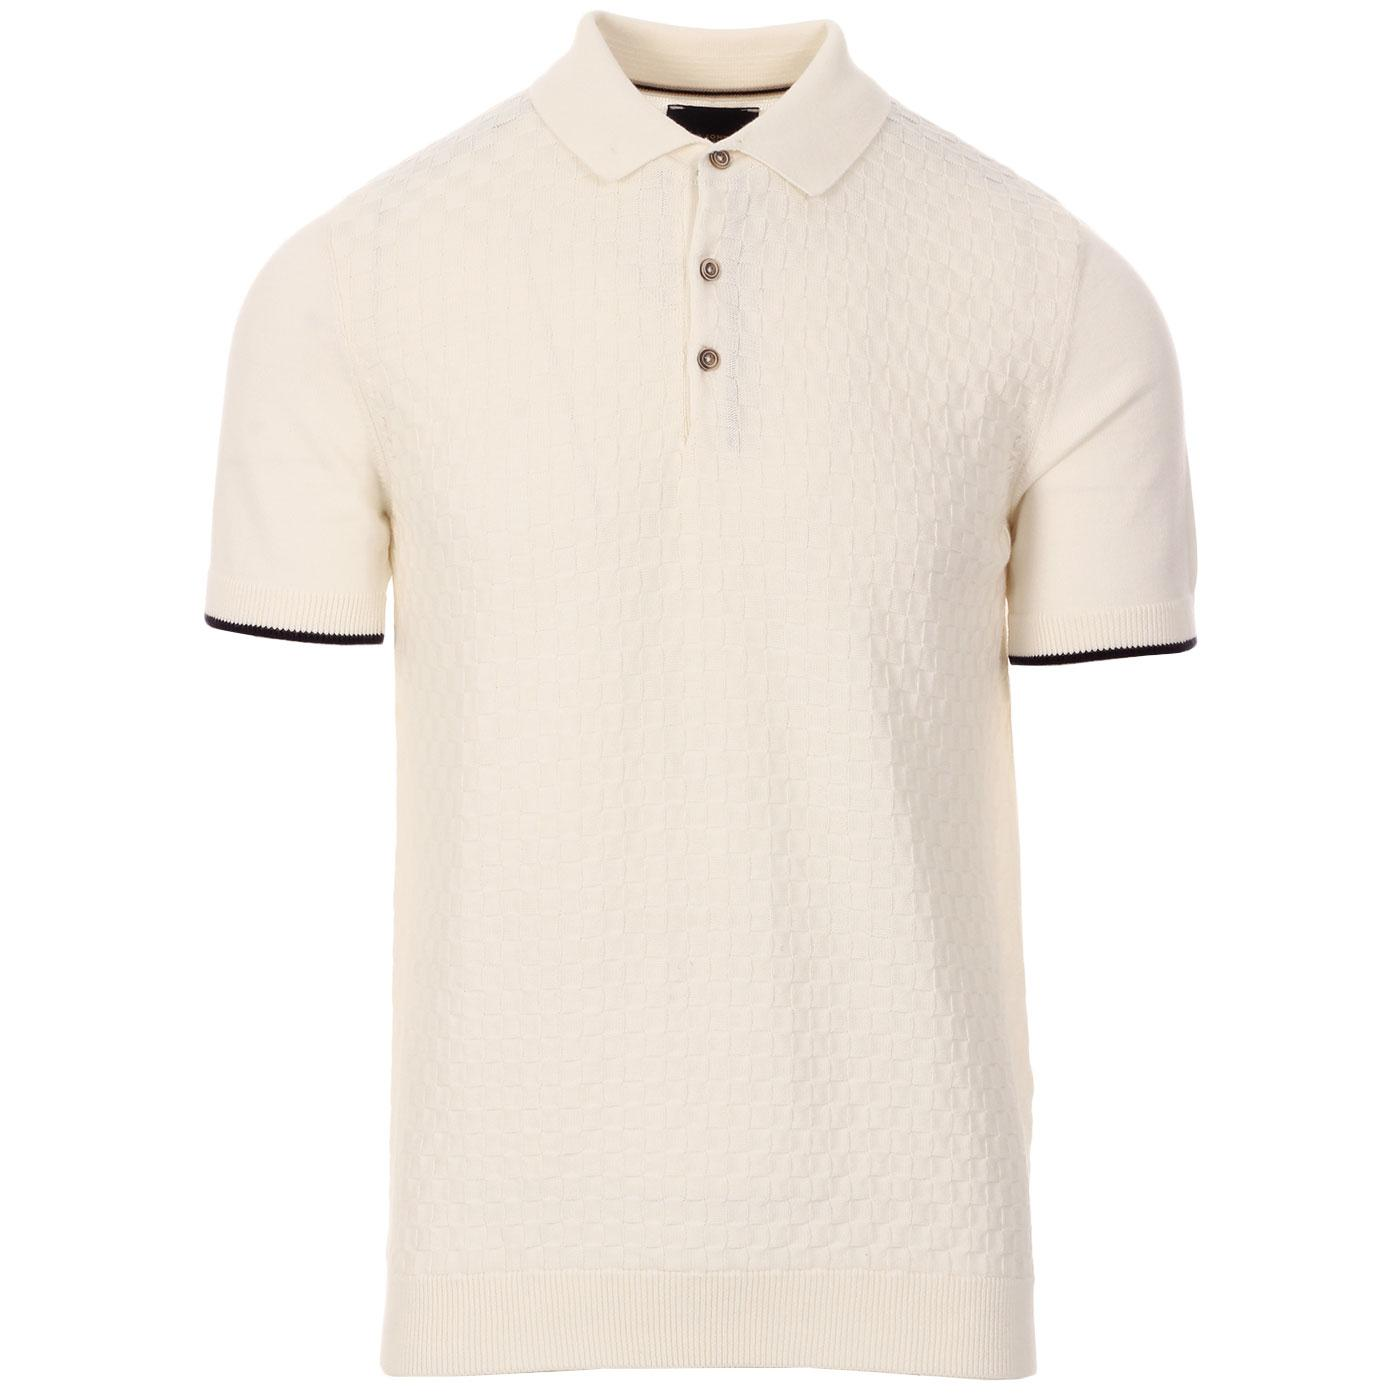 GUIDE LONDON 60s Mod Basket Weave Knit Polo Top OW